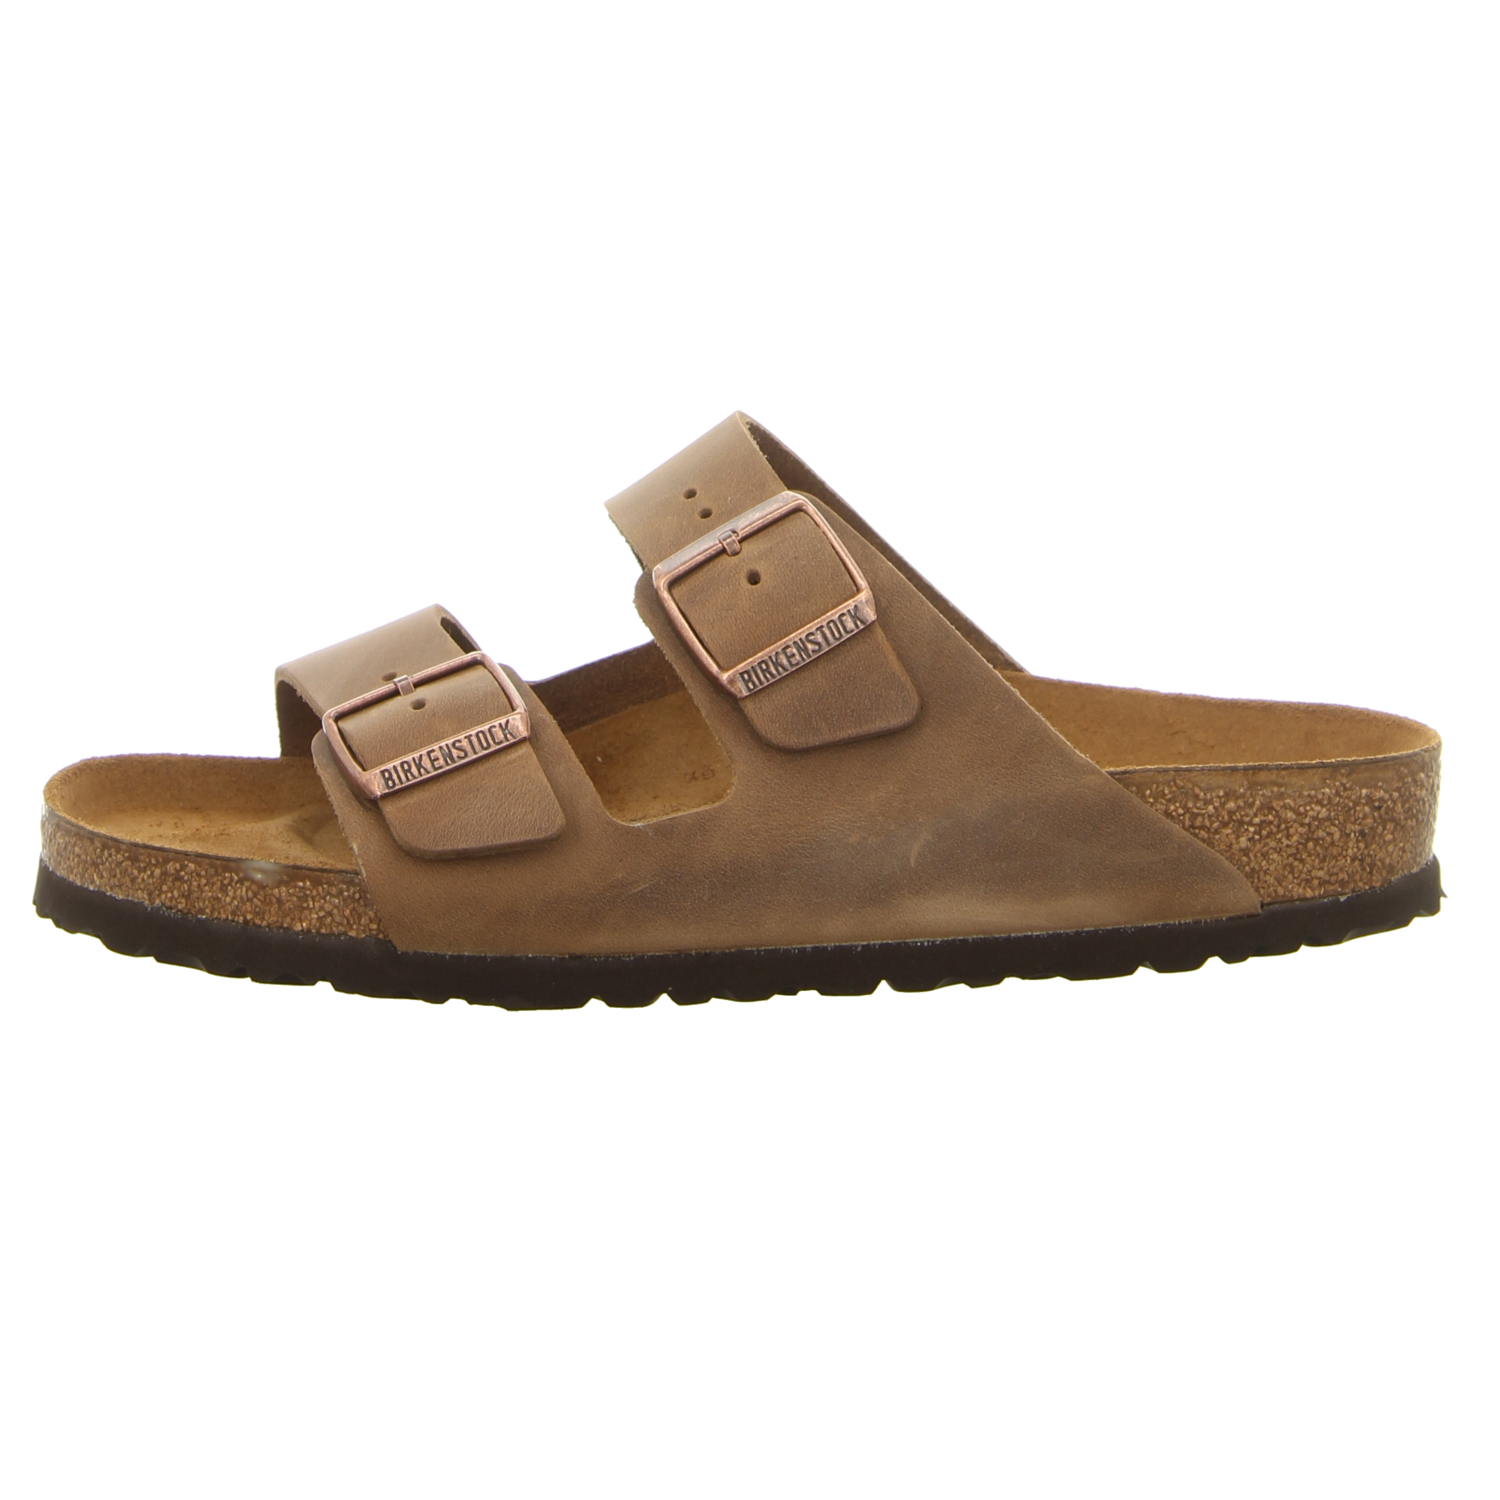 birkenstock herren pantolette arizona in braun schuhfachmann. Black Bedroom Furniture Sets. Home Design Ideas